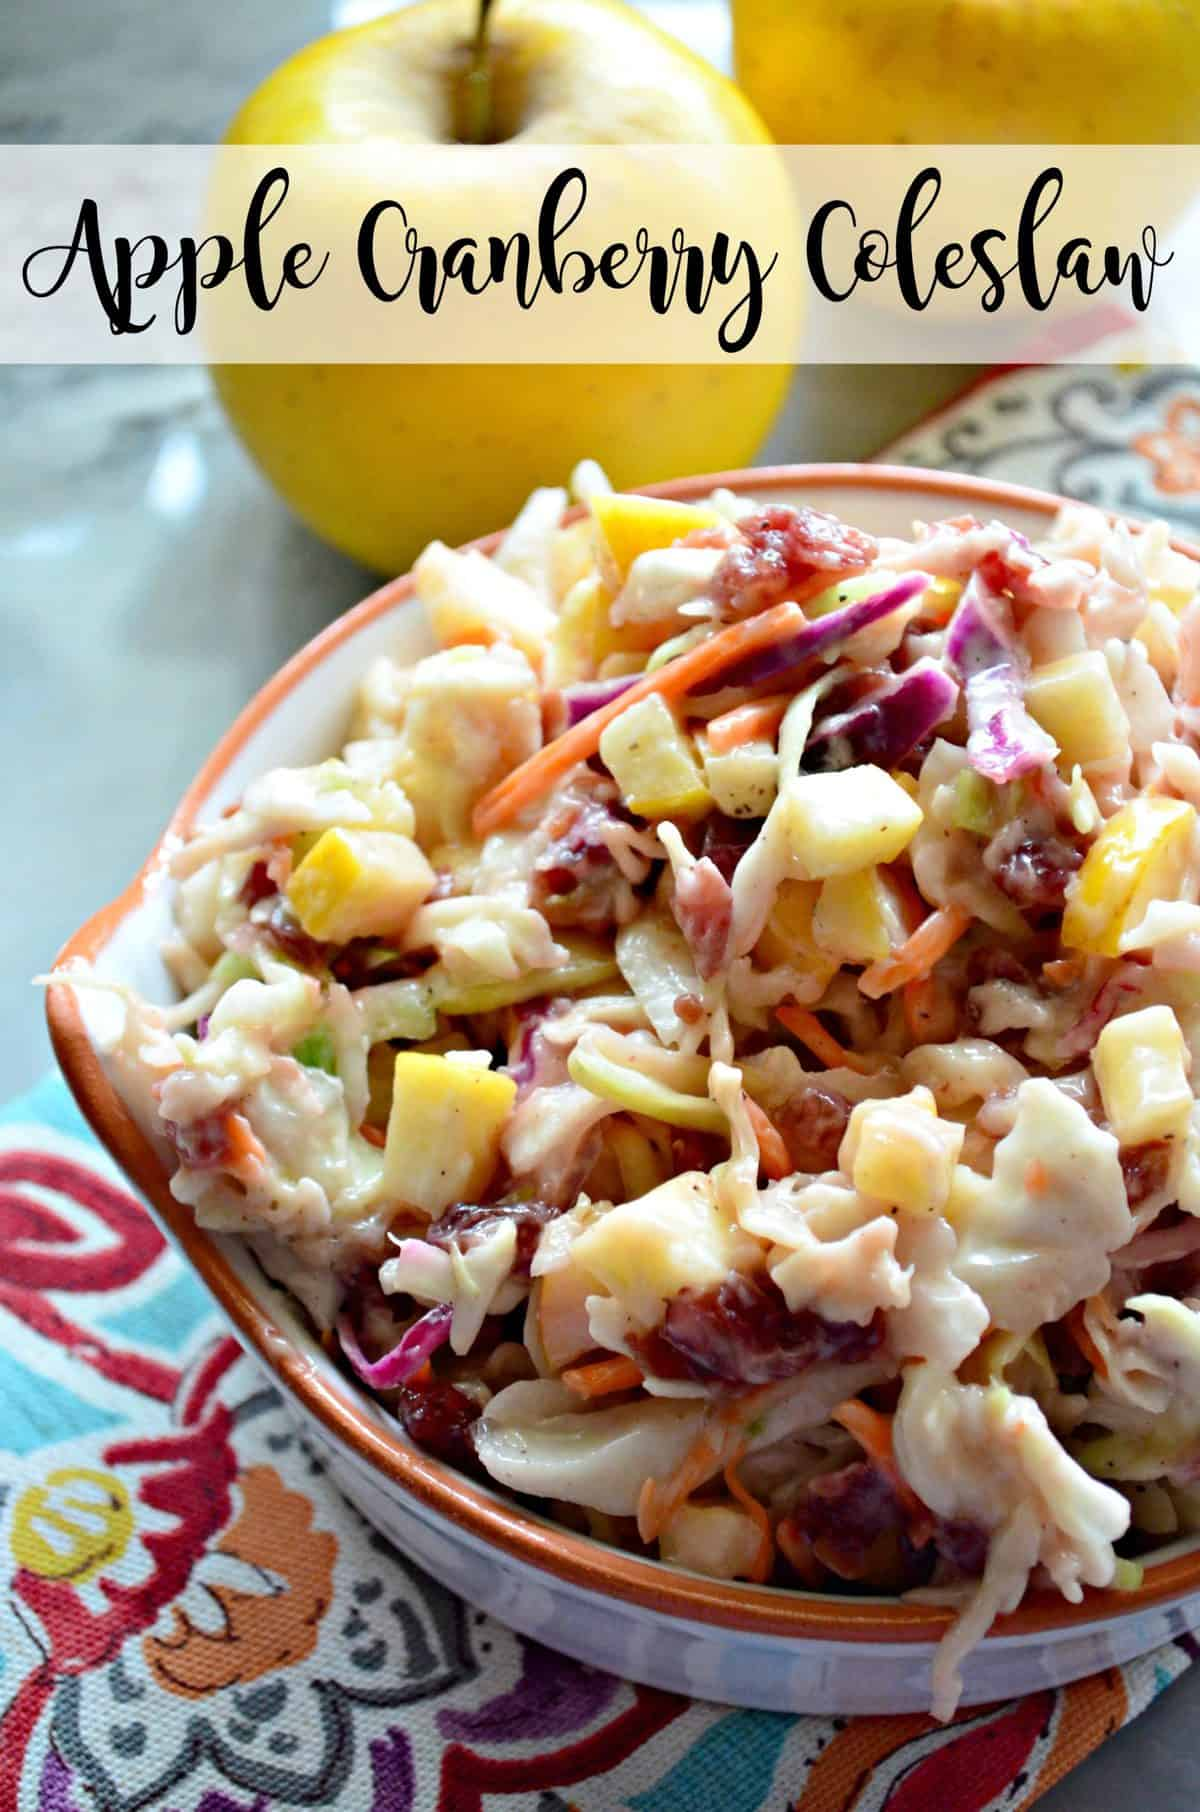 close up top view of shredded carrots, cabbage, and apple slices with sauce in small bowl with title text.